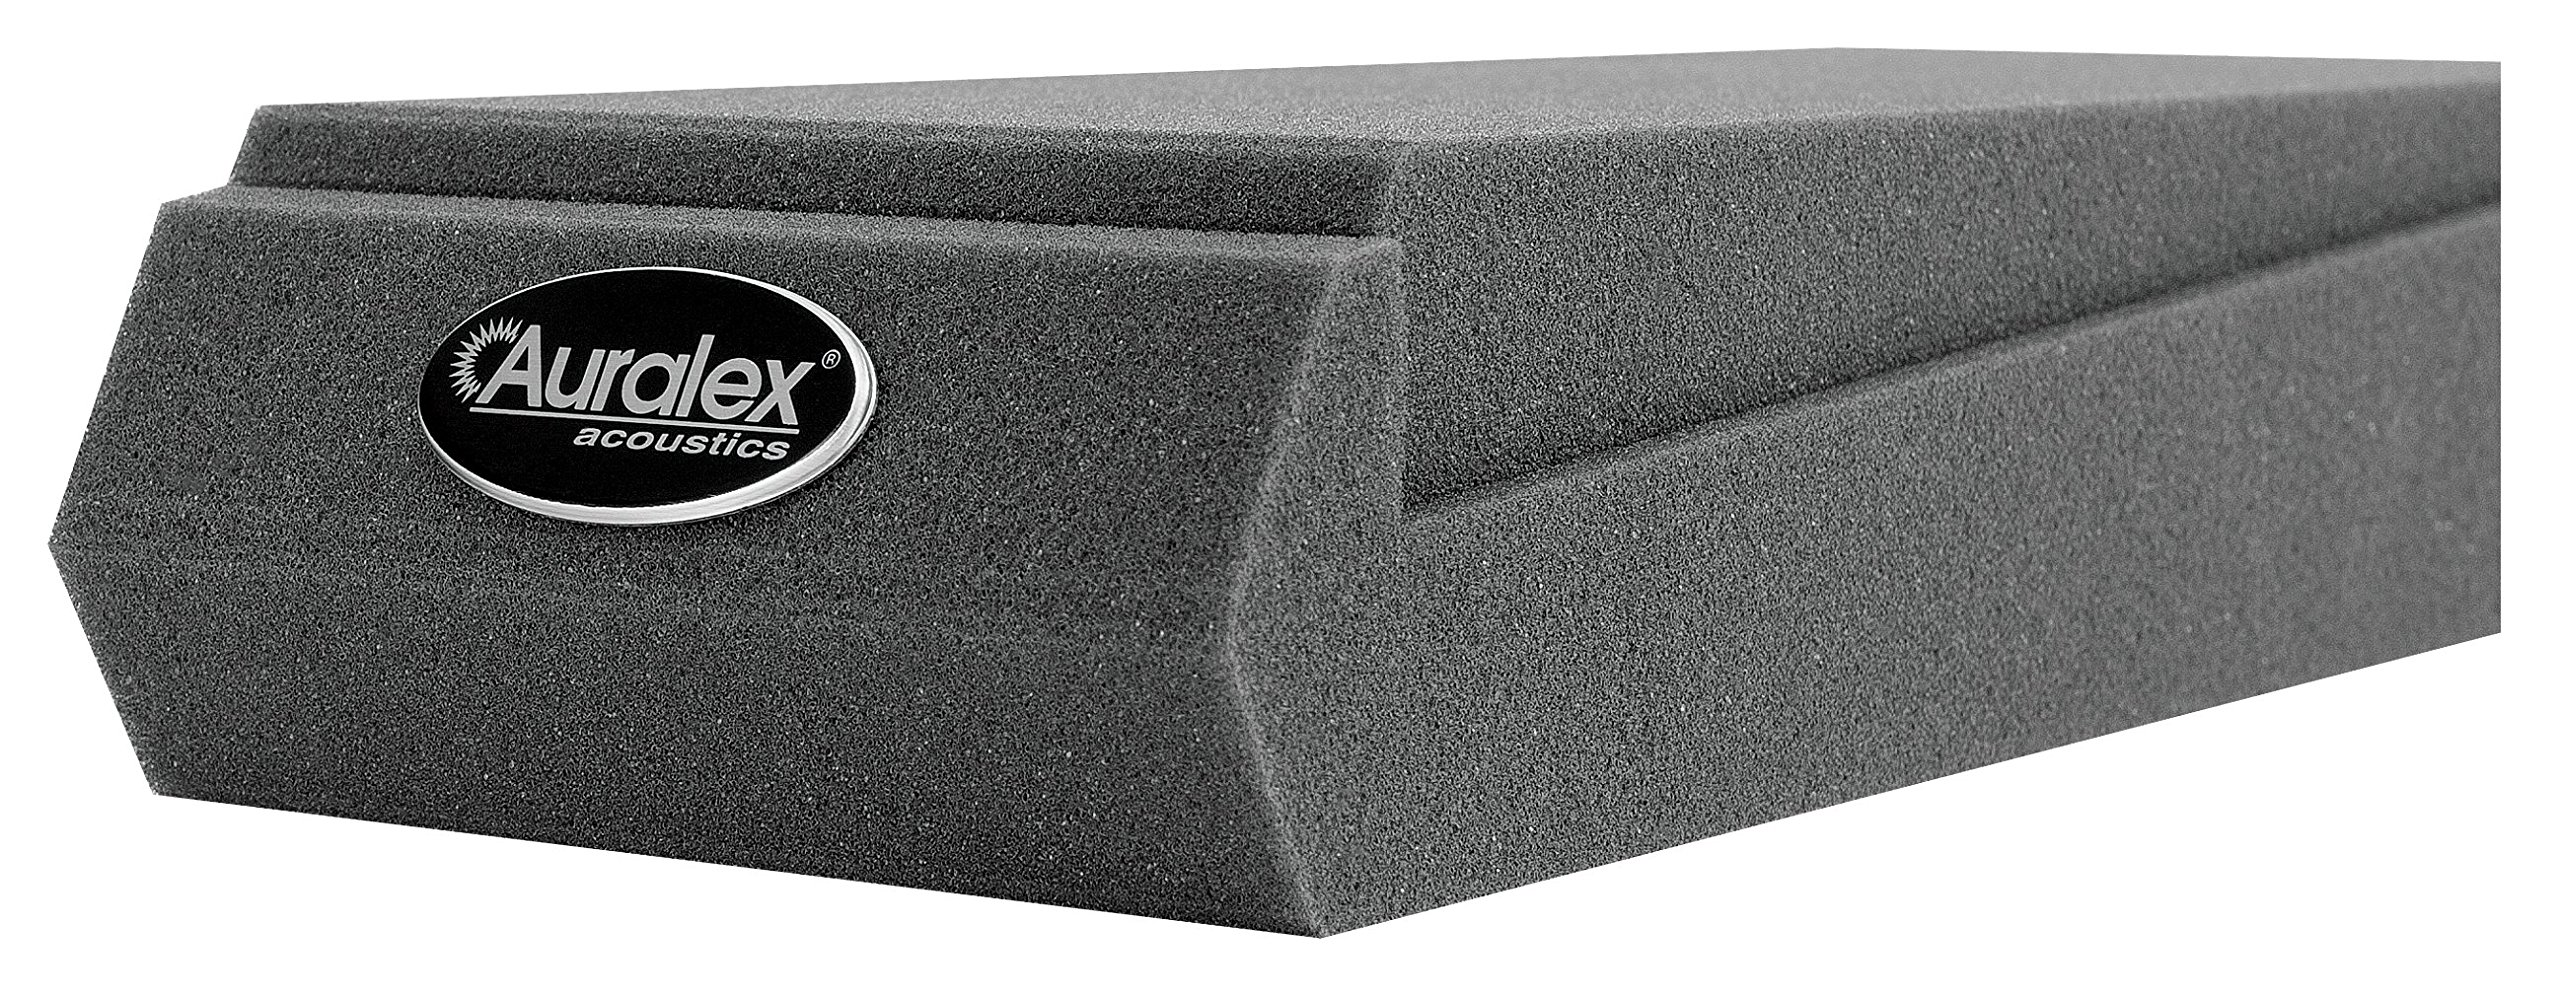 Auralex Acoustics MOPAD MOPAD Monitor Acoustic Isolation Pads (1 Pair), Charcoal by Auralex Acoustics